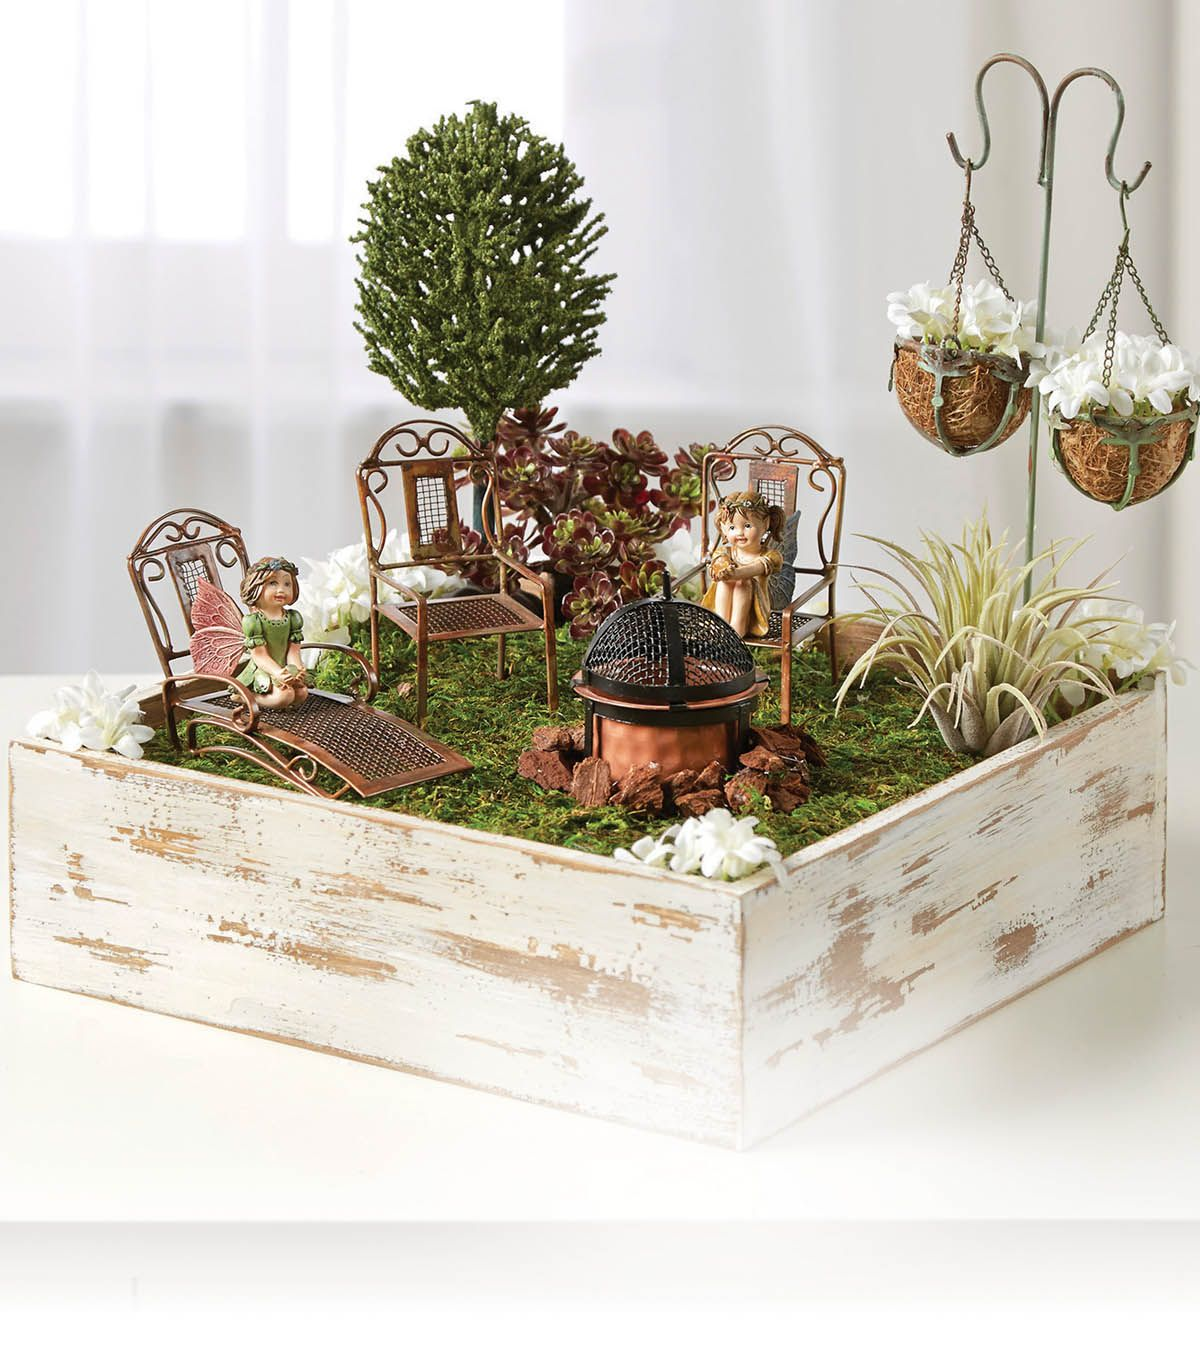 Wonderful Outdoor Gardening Ideas And Inspiration With: Fairy Garden Inspiration